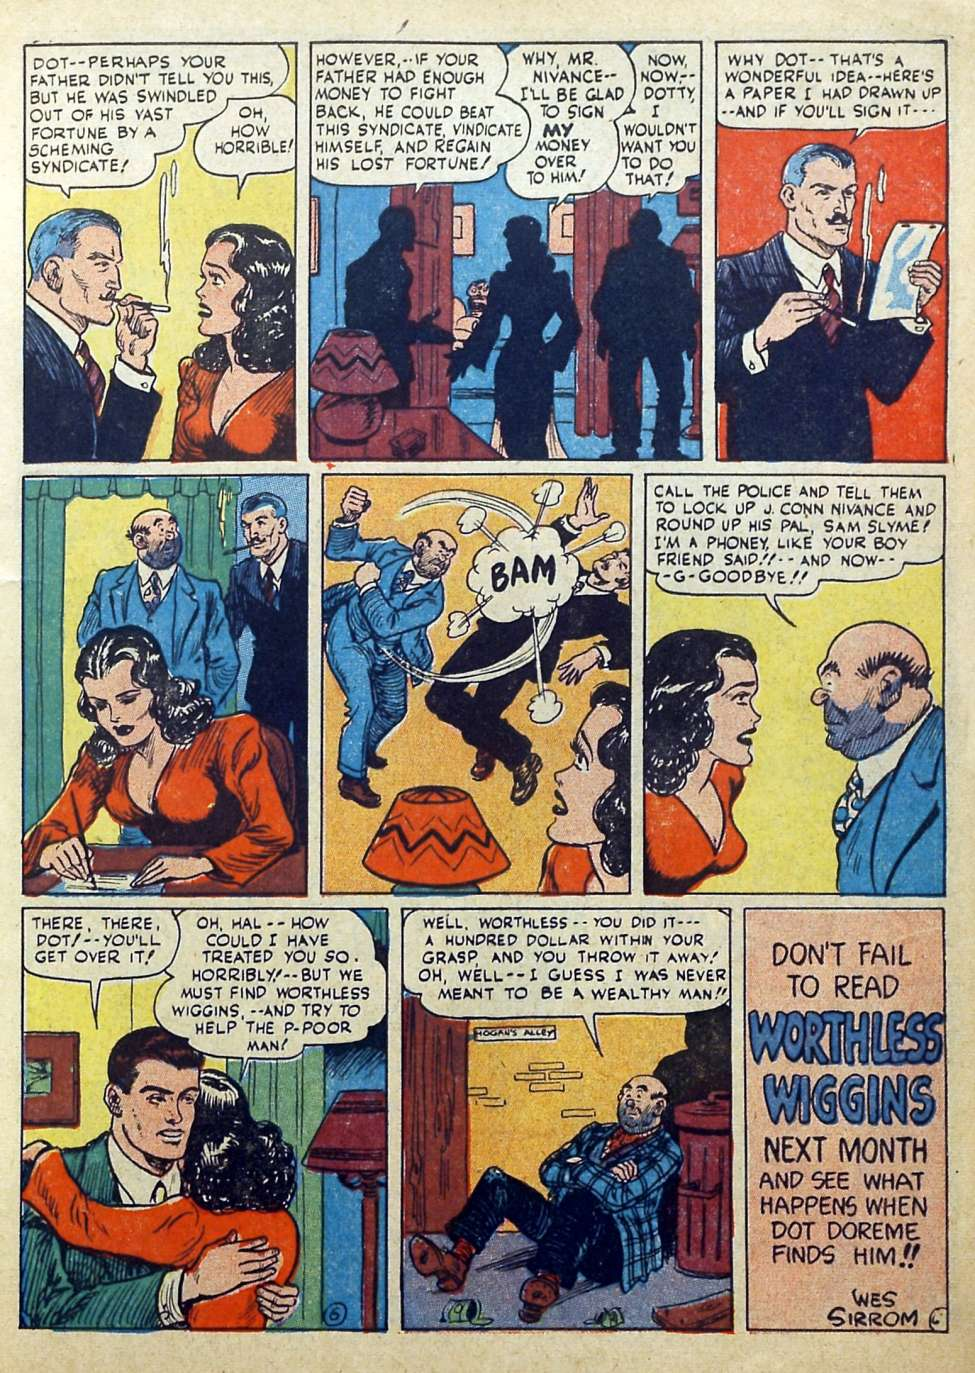 Suspense Comics #3 from 1944 15